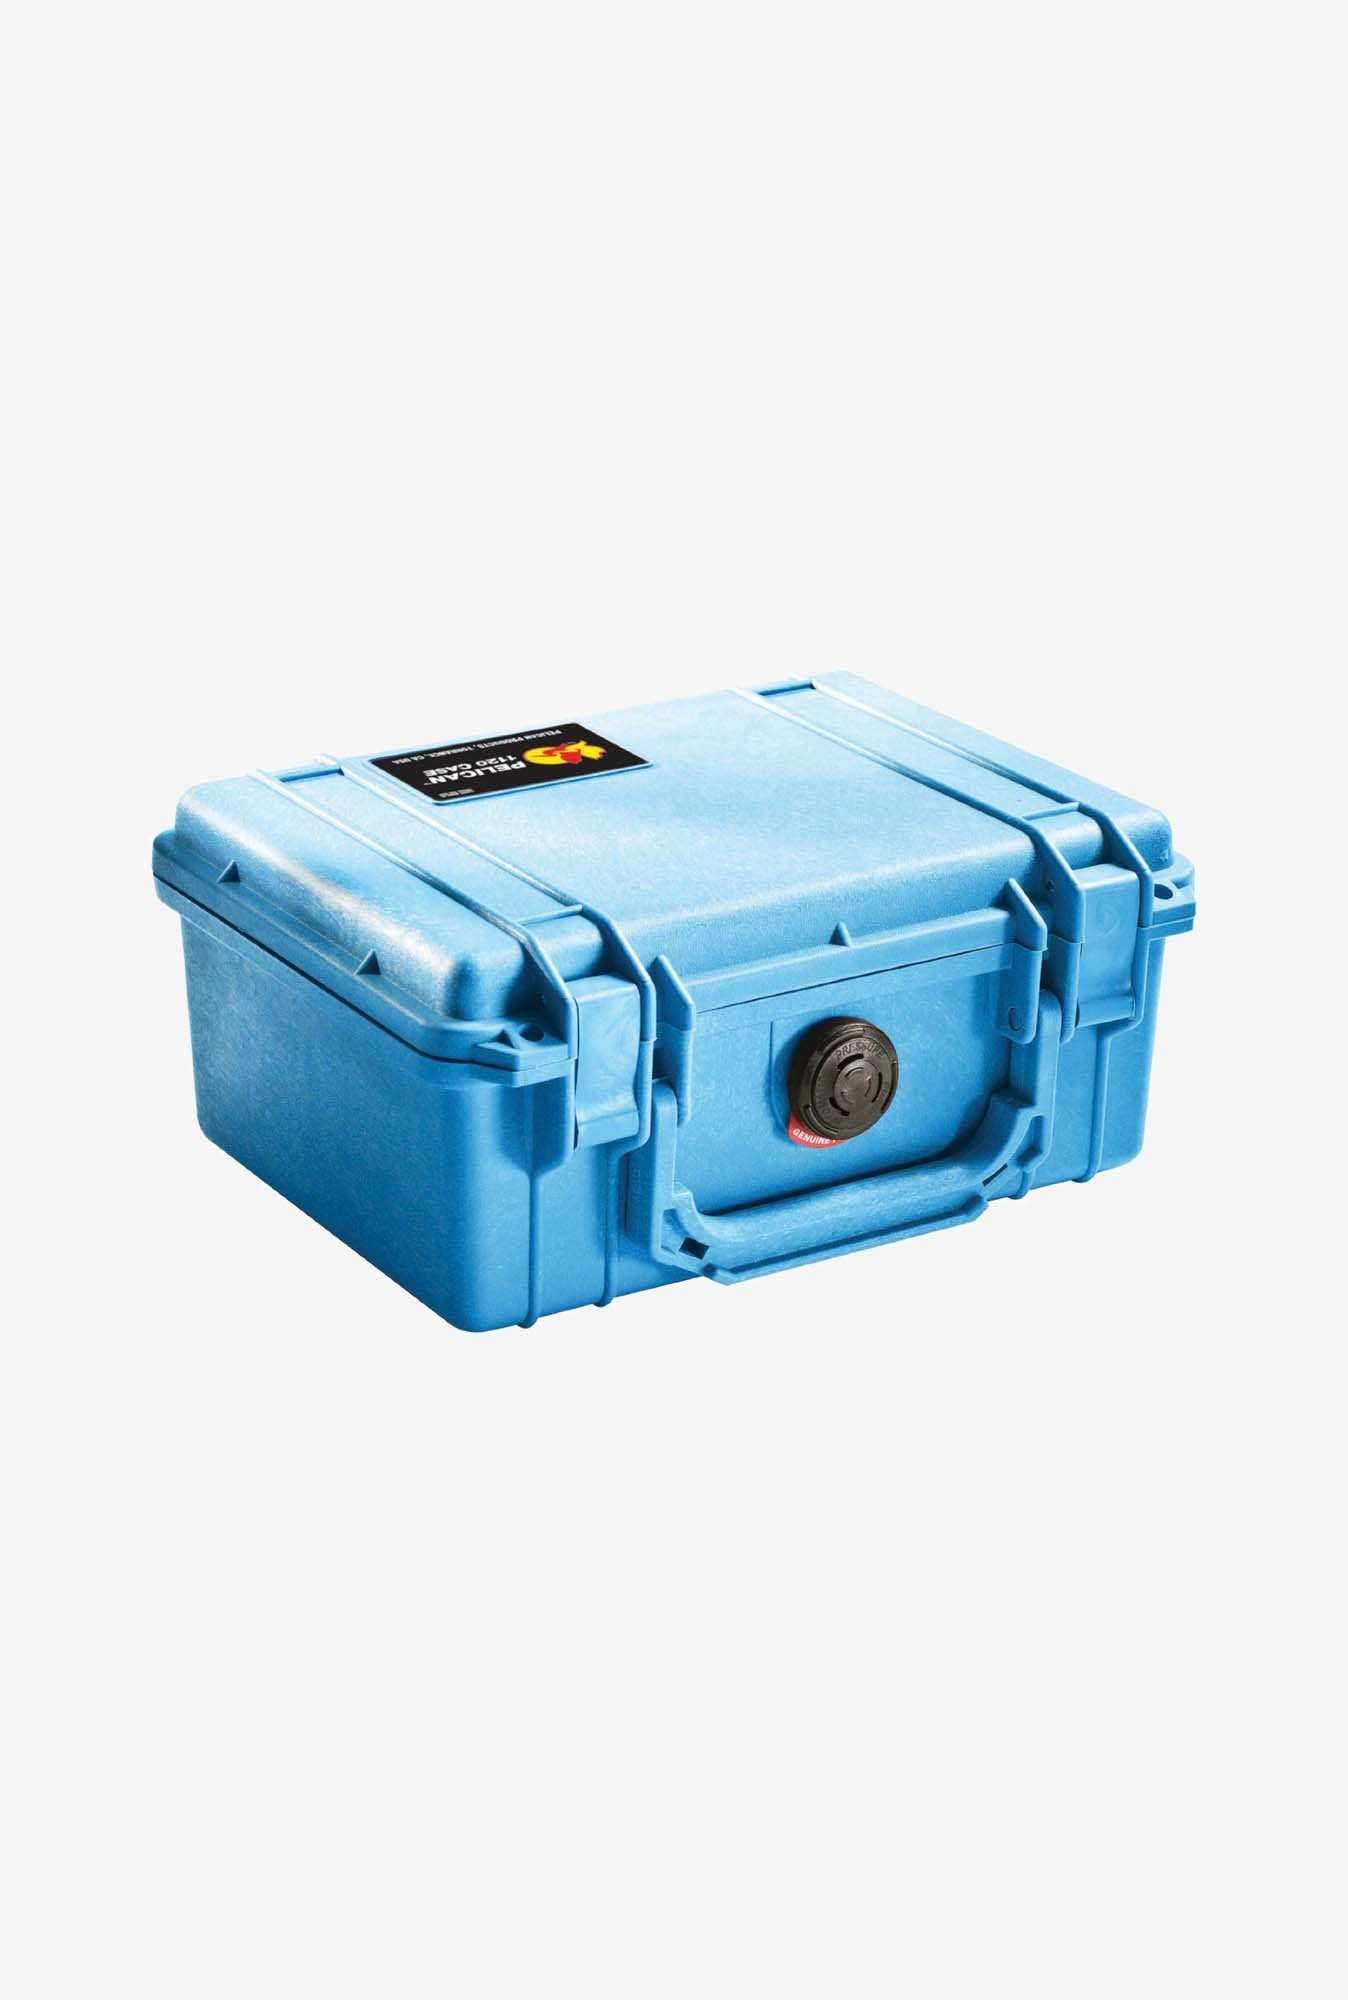 Pelican 1150 Case with Foam for Camera (Blue)